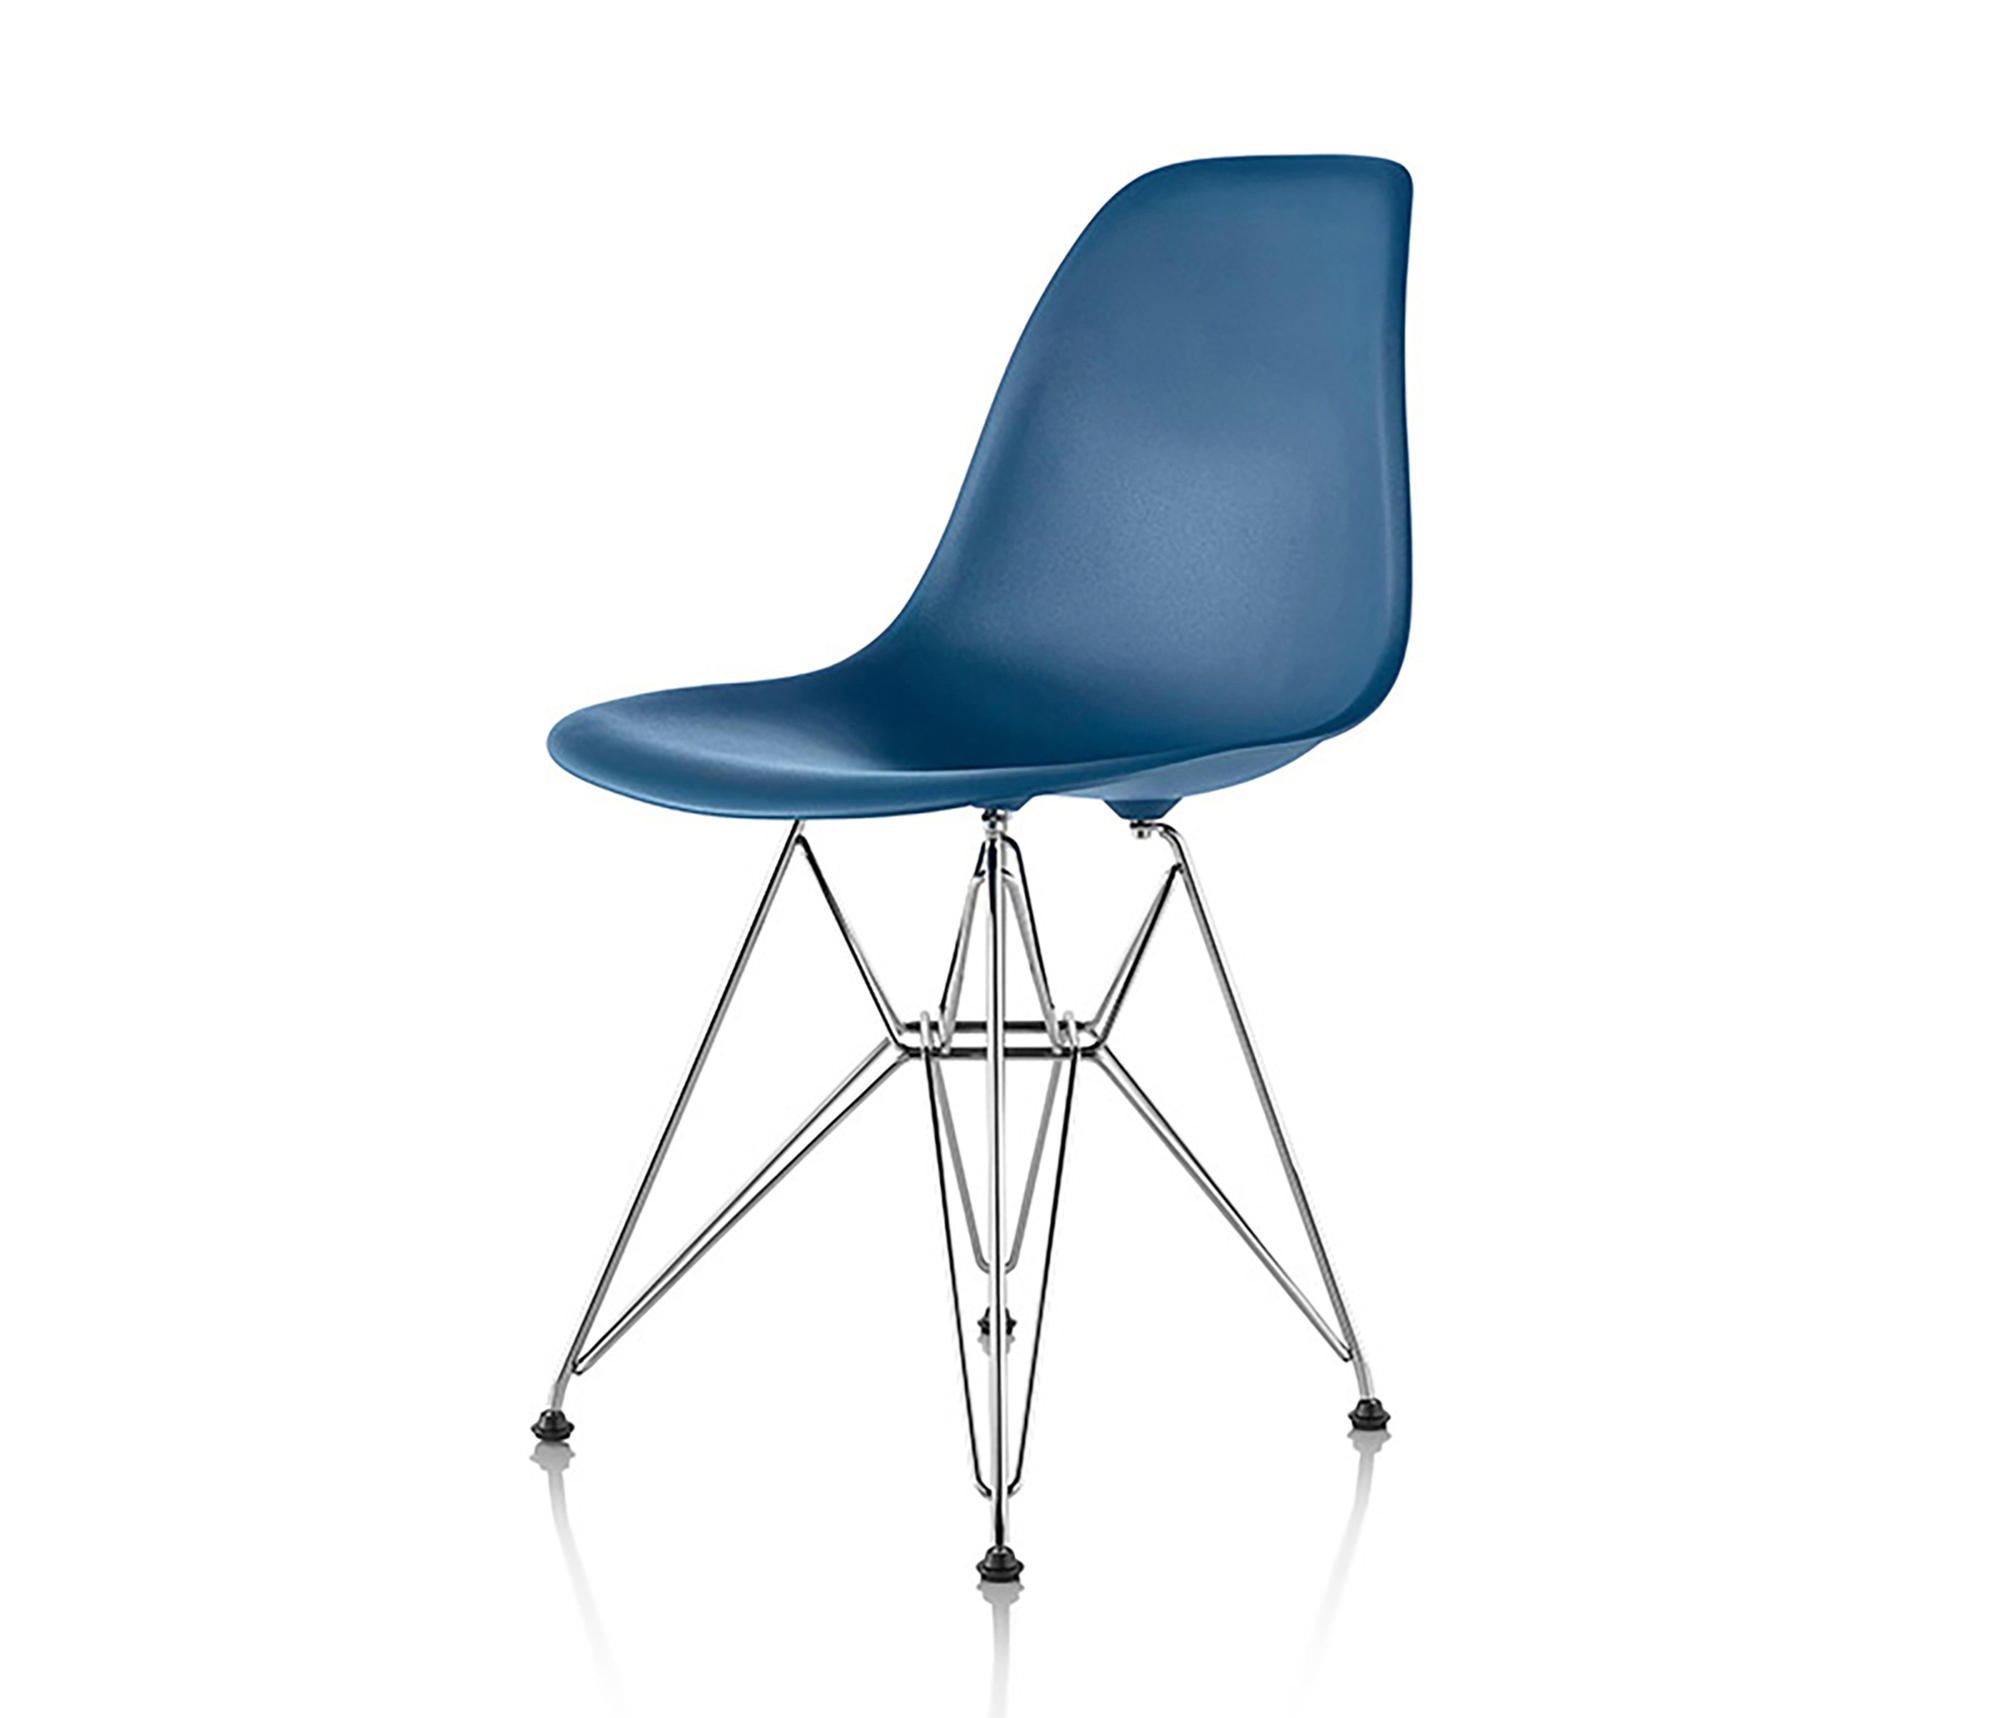 eames molded side chair outdoor plastic chairs stackable from herman miller architonic by